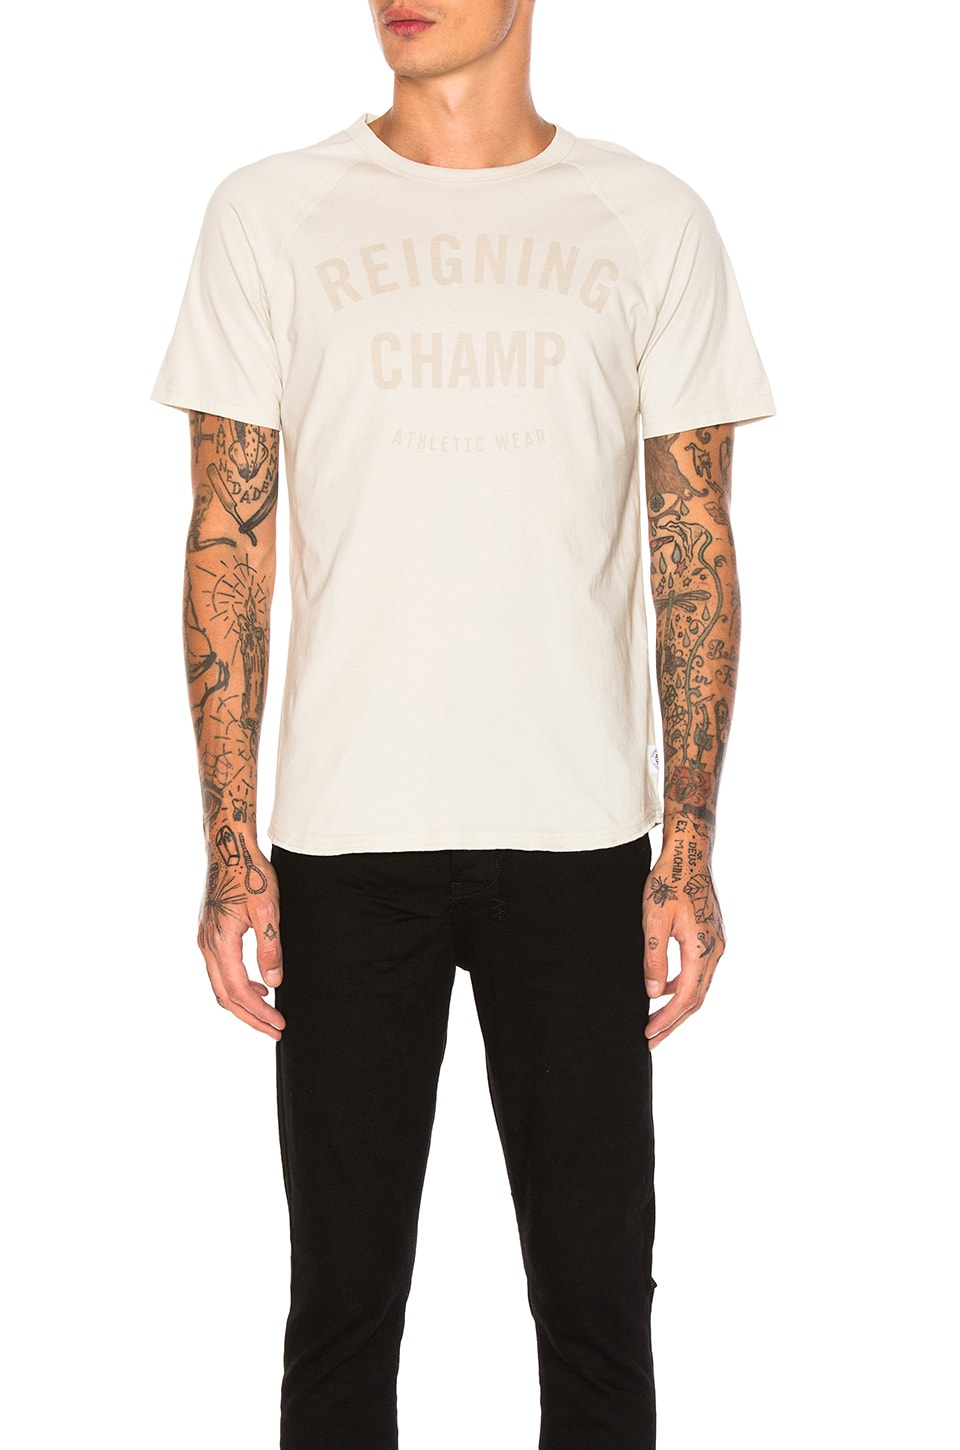 Gym Logo Raglan Tee by Reigning Champ